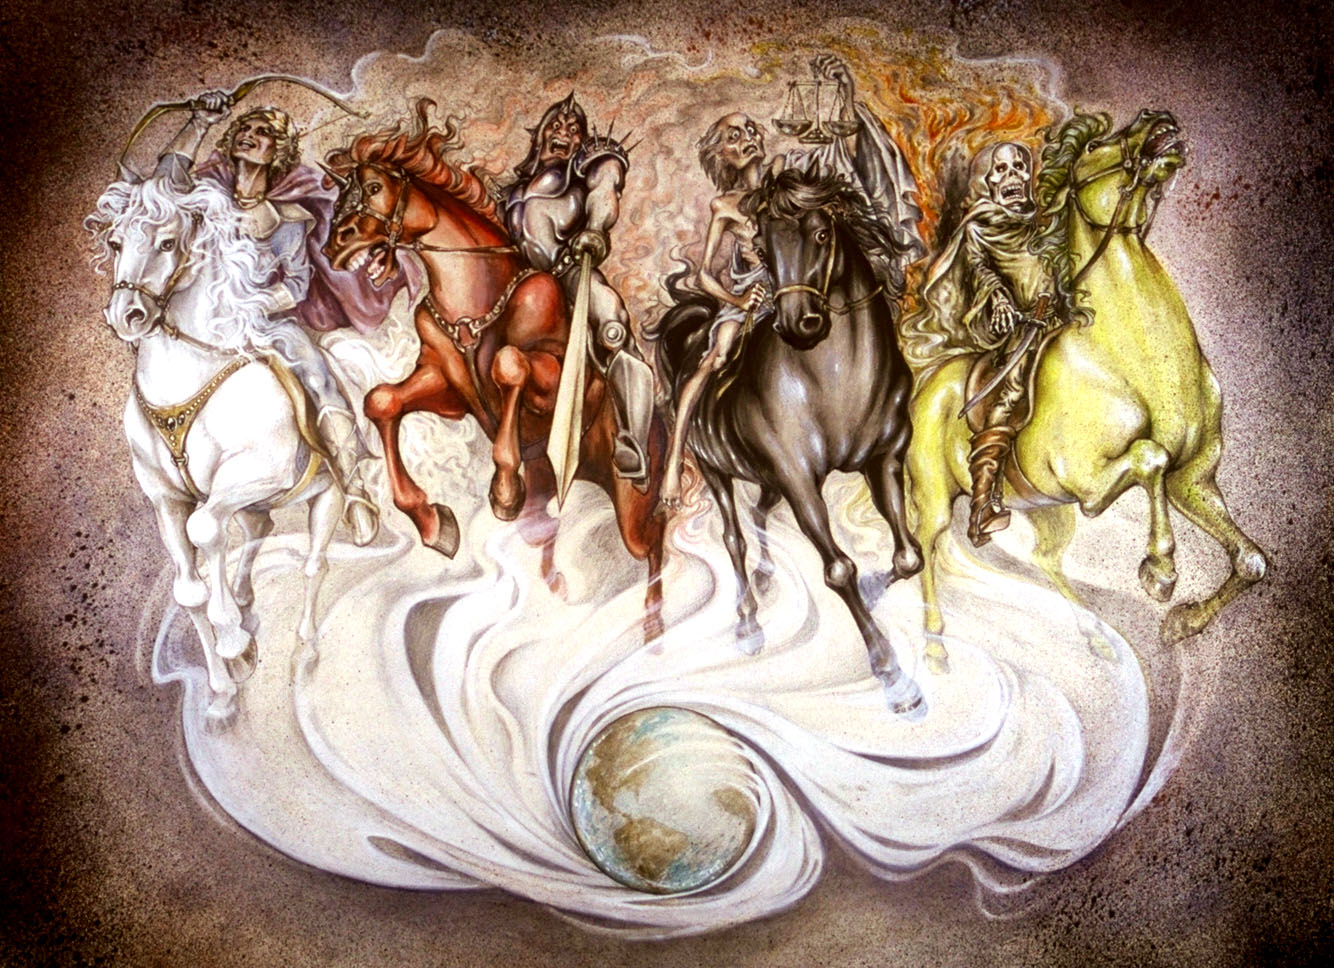 Four Horsemen Of The Apocalypse clipart #8, Download drawings